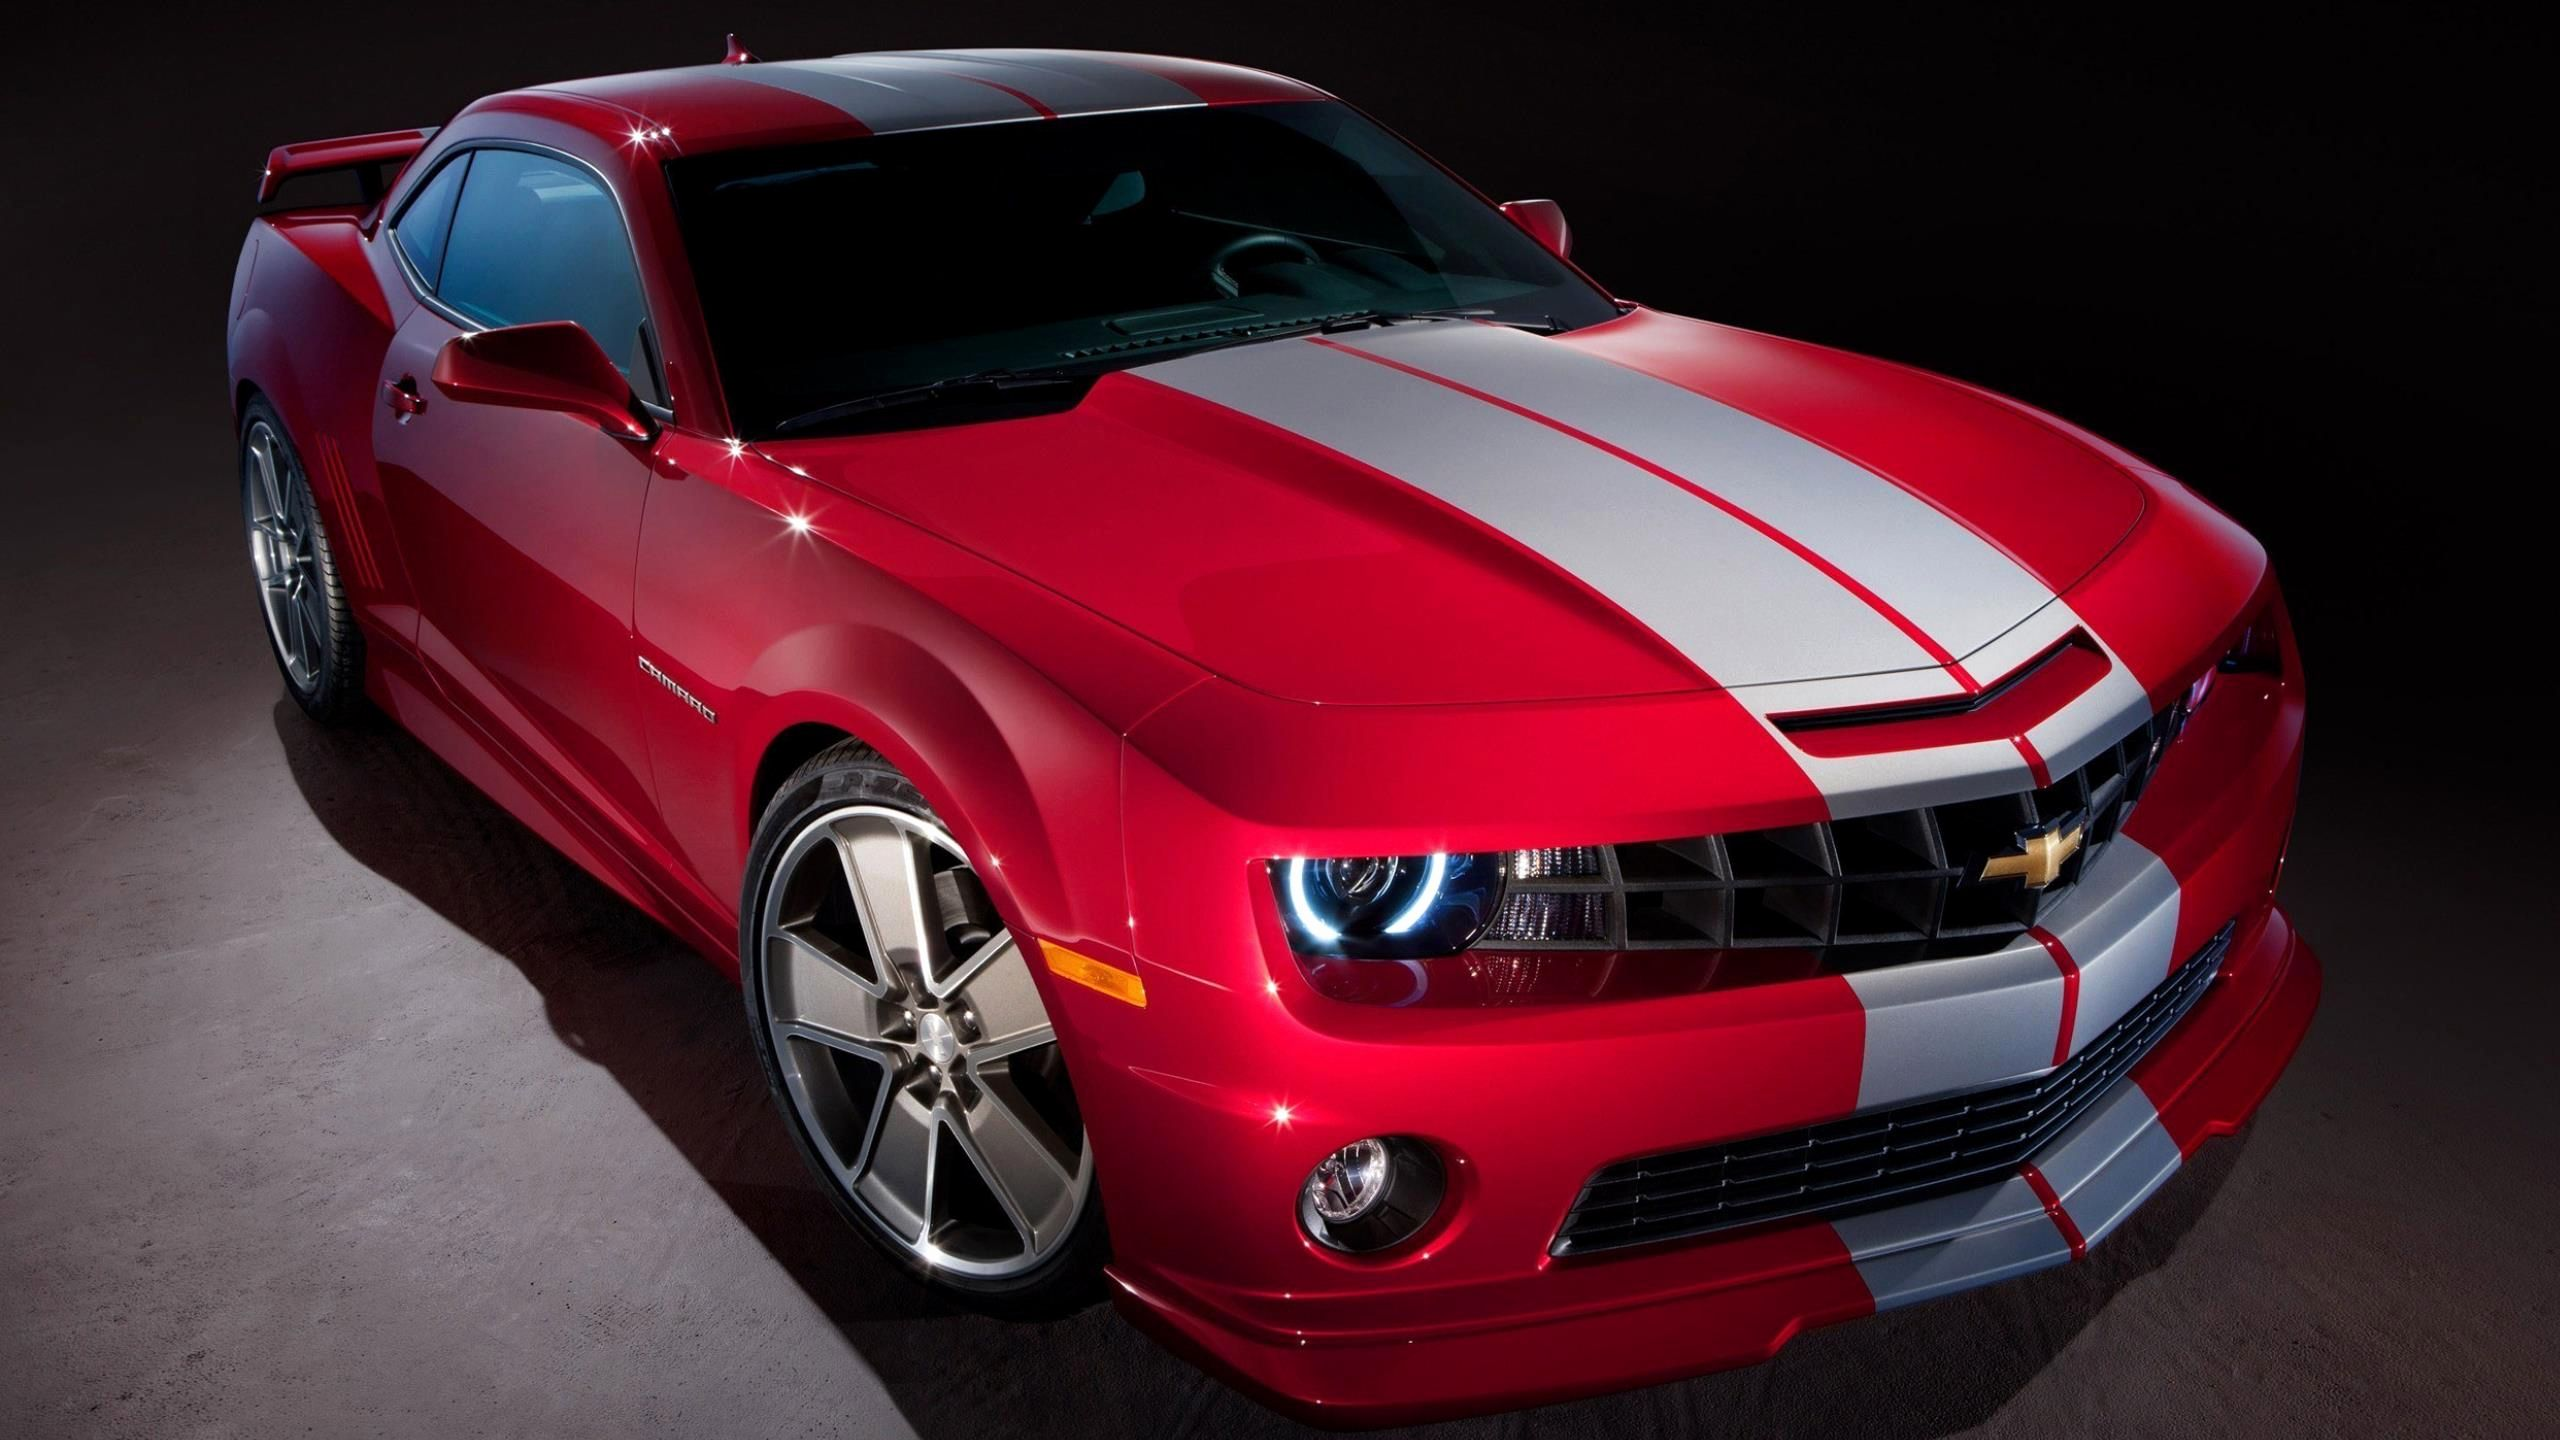 Red Hot Cars Wallpapers Top Free Red Hot Cars Backgrounds